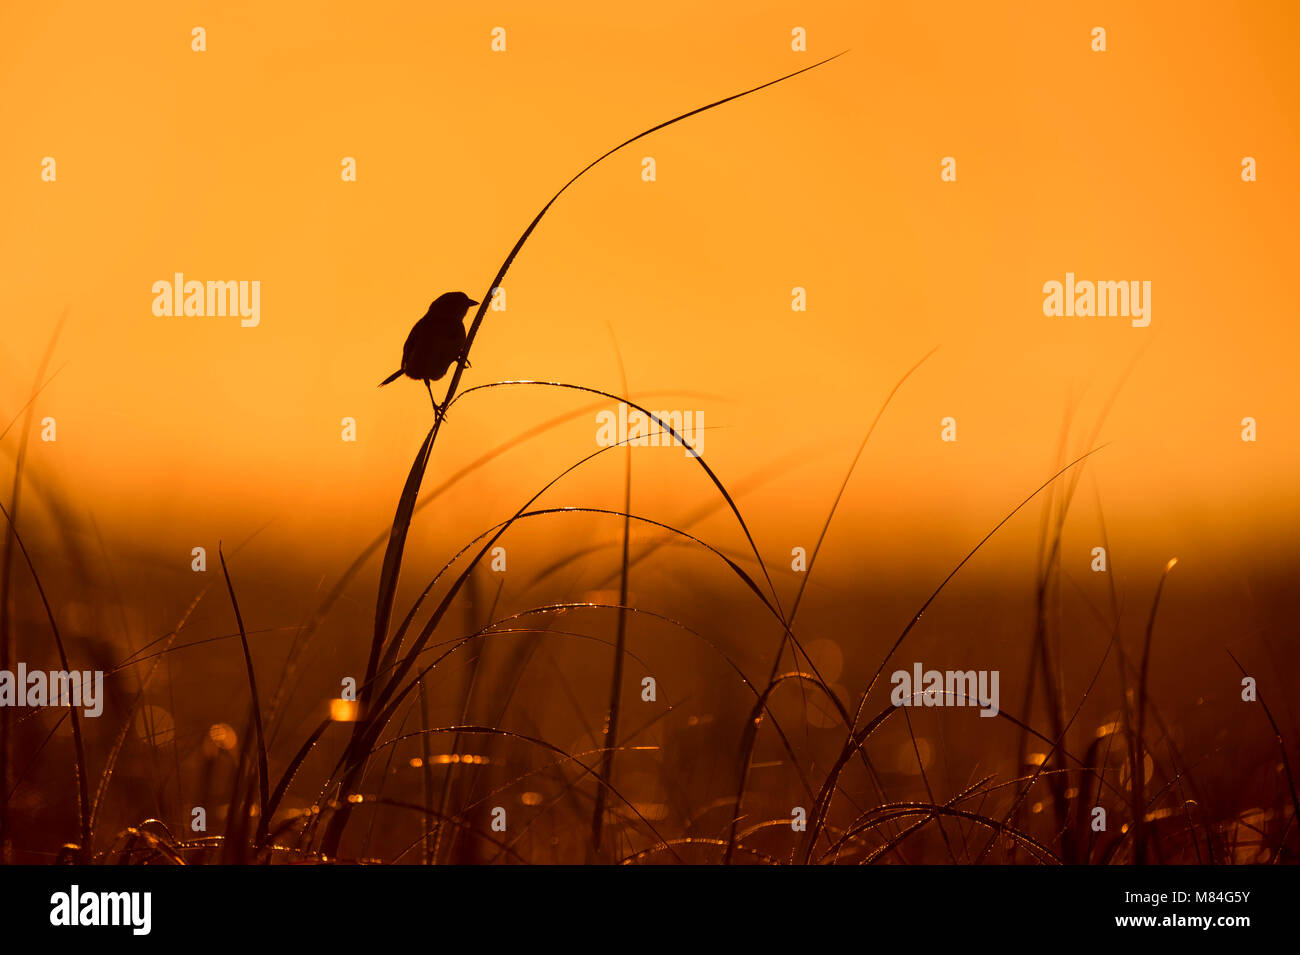 A Seaside Sparrow perches on high marsh grass silhouetted against the orange morning sky. Stock Photo